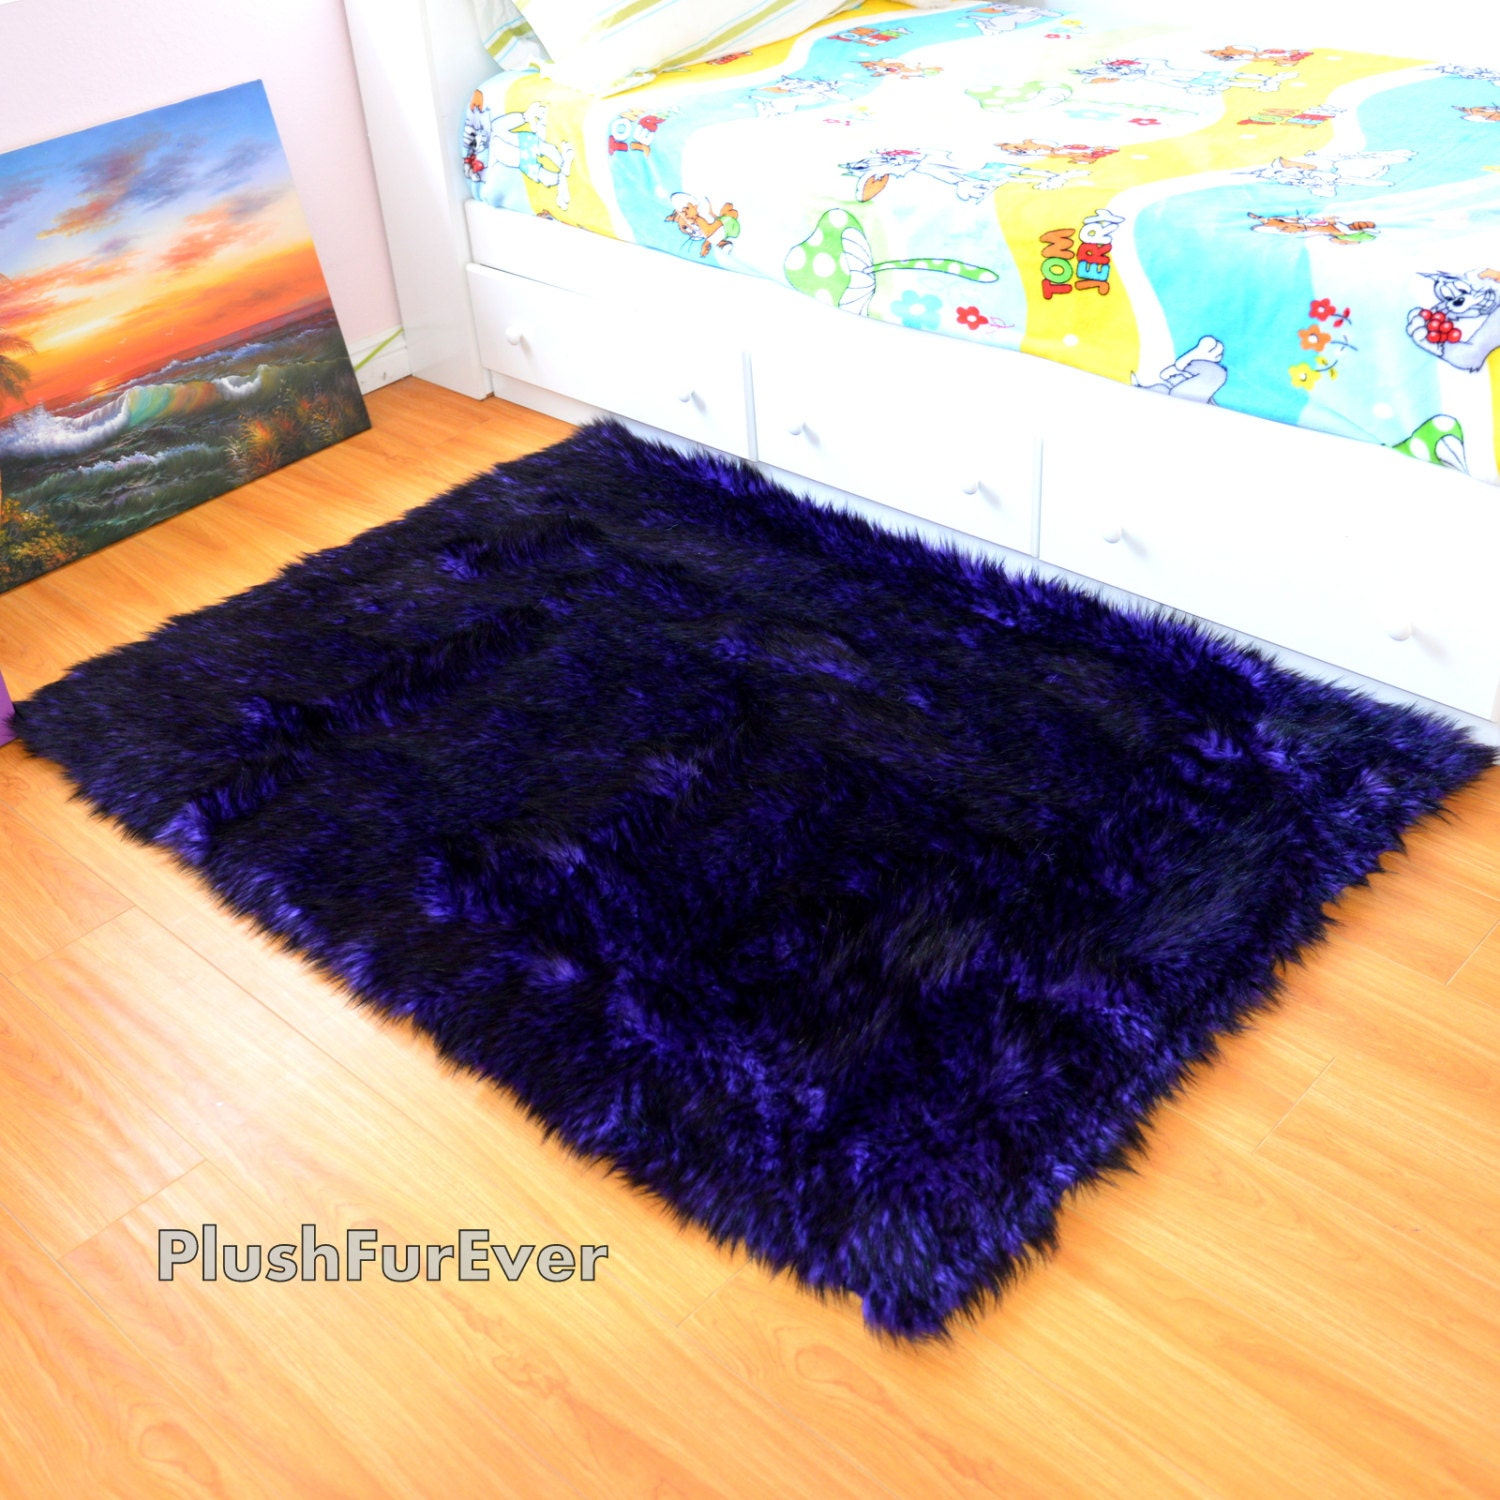 Wolf Fur Rug 4' X 5' Purple Black Throw Rugs Area By